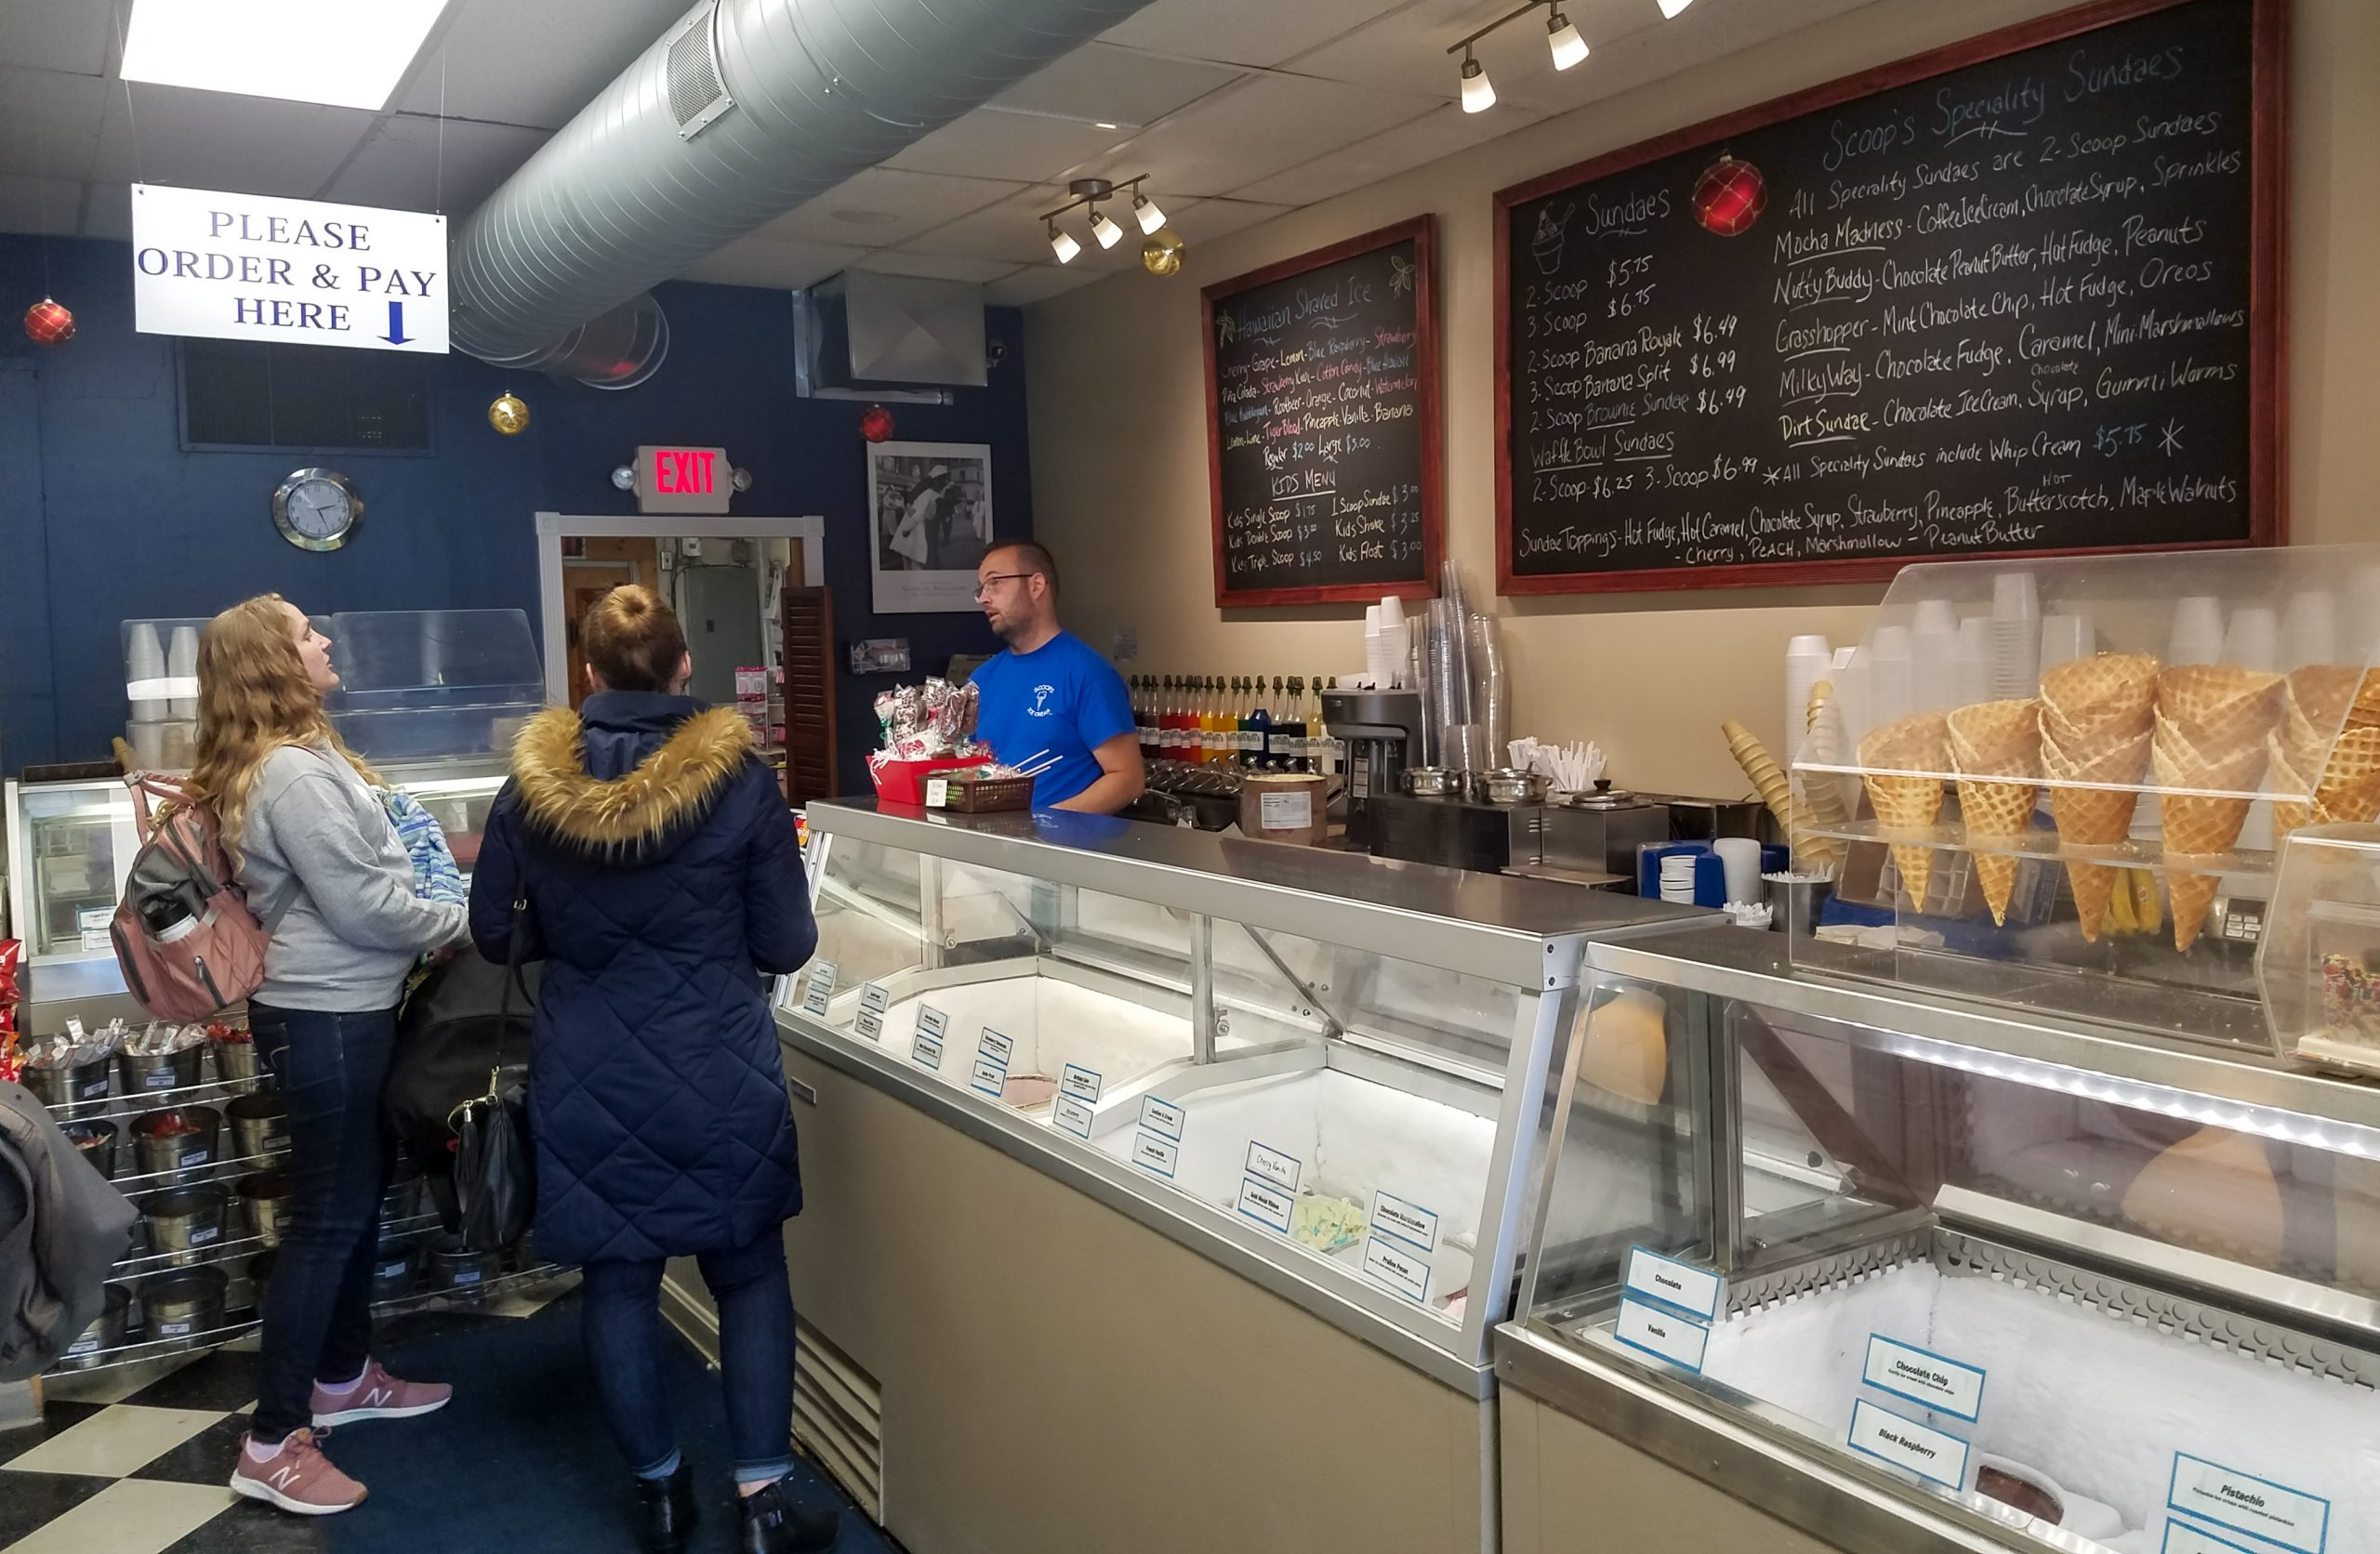 Scoops owner Mike Collins gets the ice cream order from two customers.